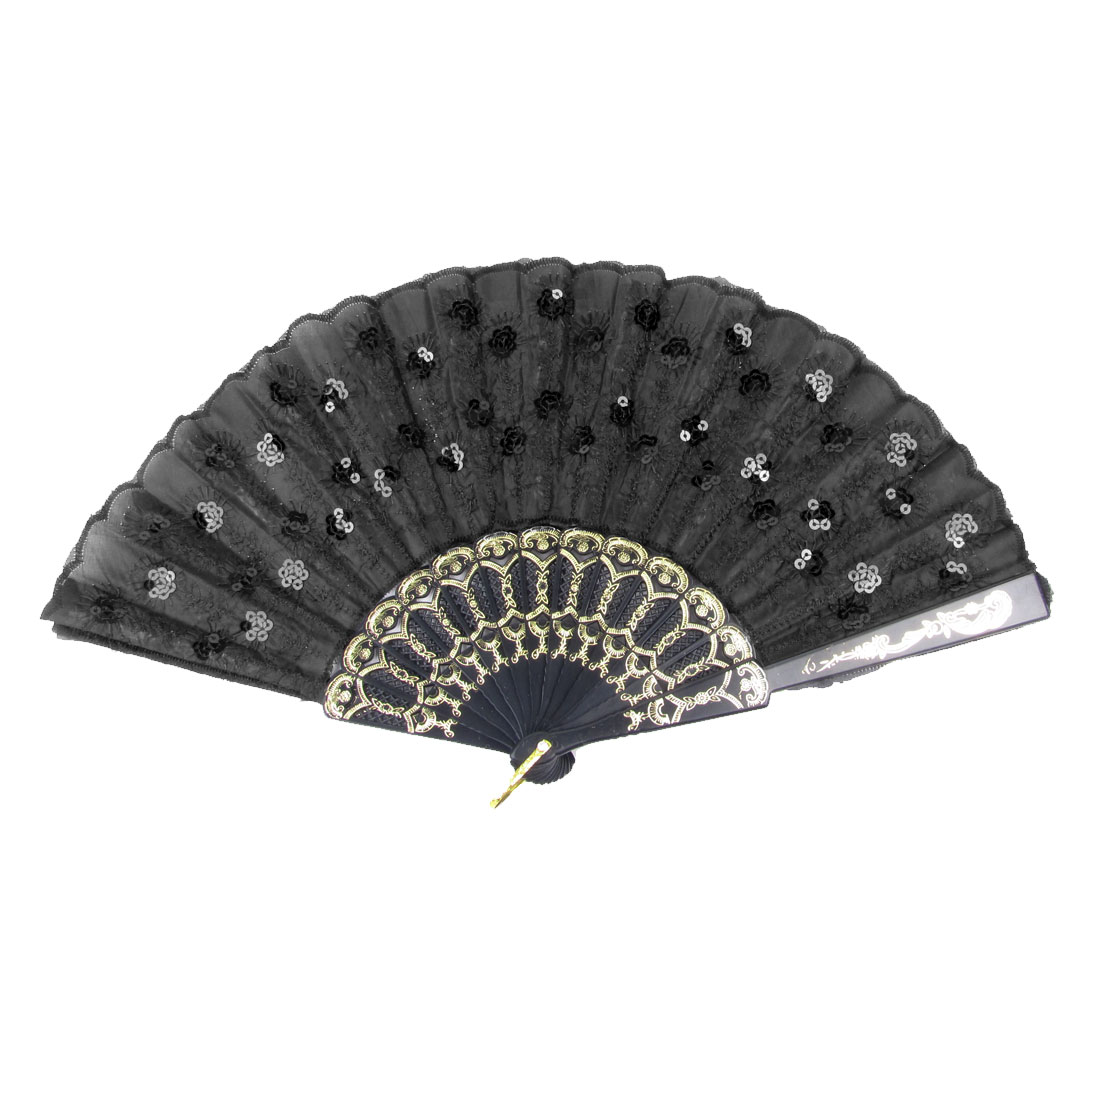 Embroidery Flowers Pattern Plastic Frame Folding Fan Black Gold Tone